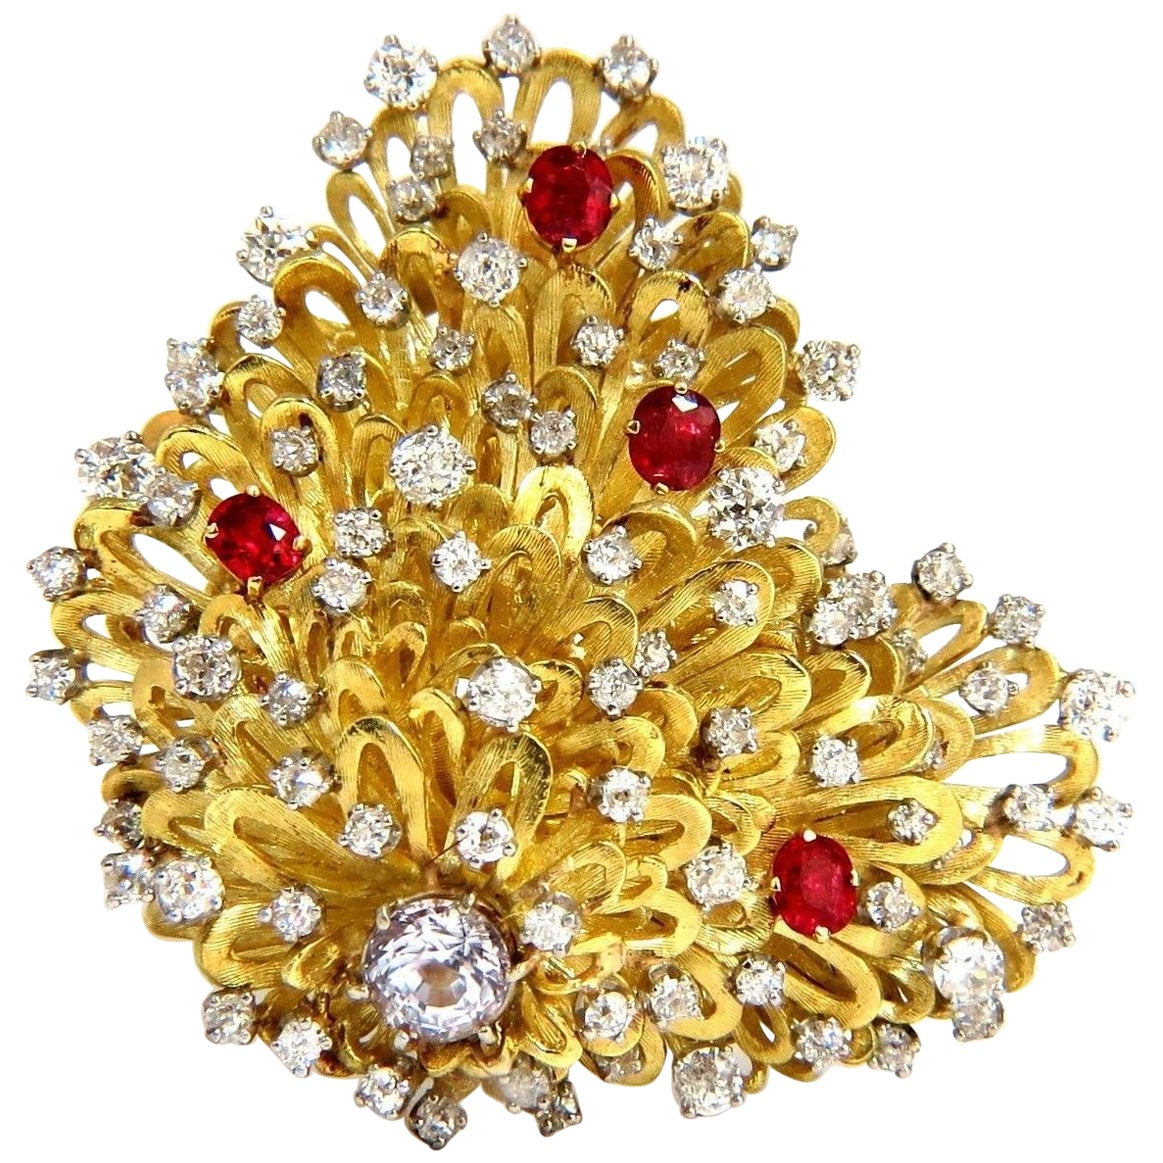 Erwin Pearl 8.00 Carat Natural Diamonds and Red Spinel Brooch Pin 18 Karat